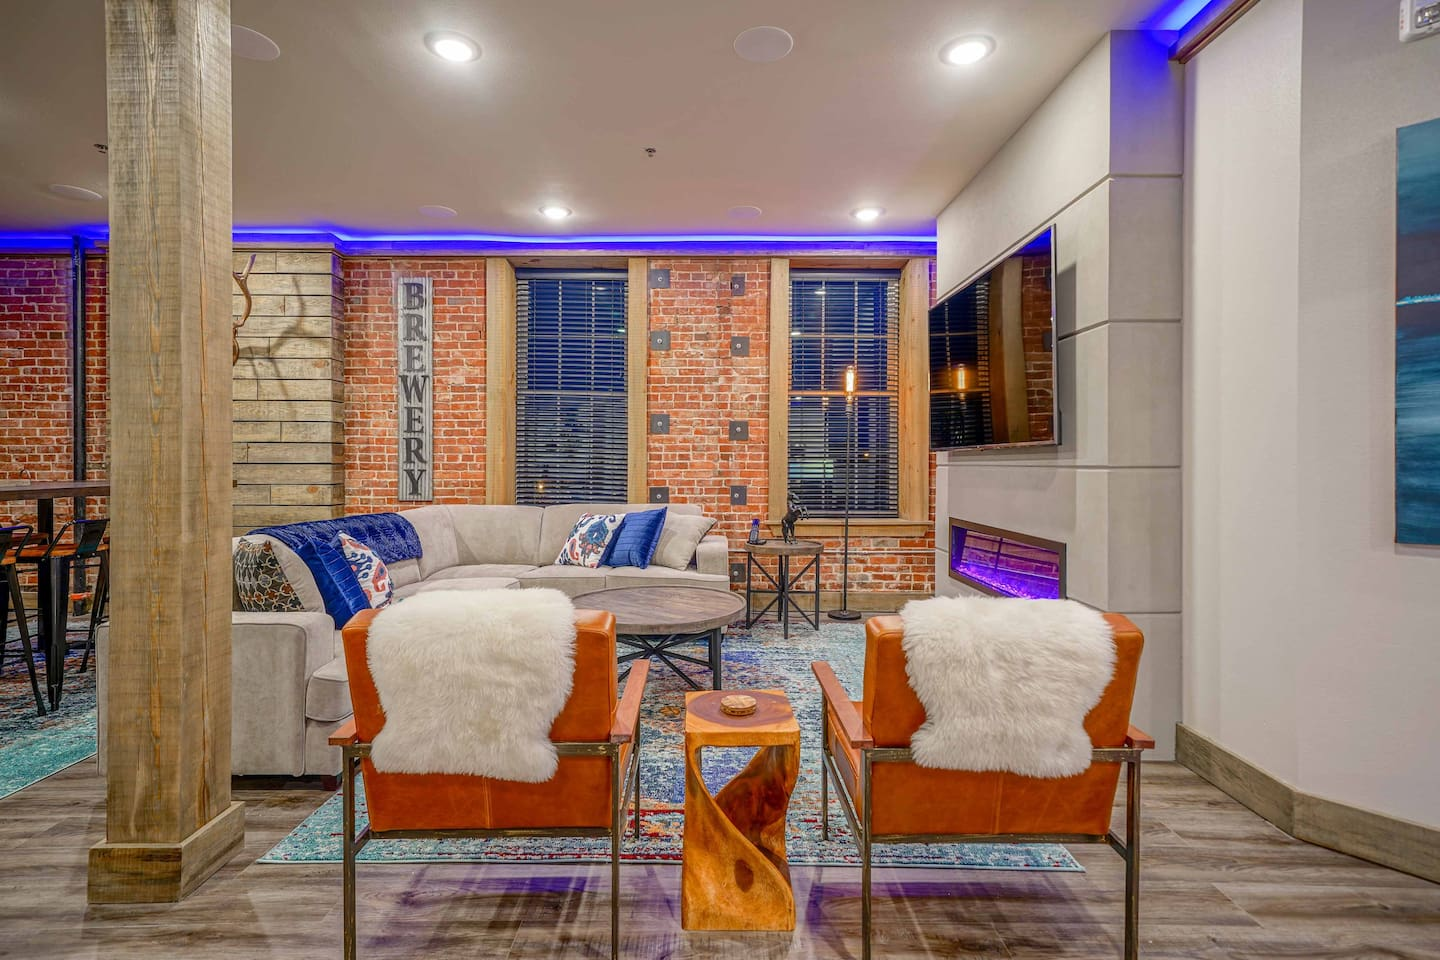 Make this fun modern vacation rental the base for your Hot Springs explorations!